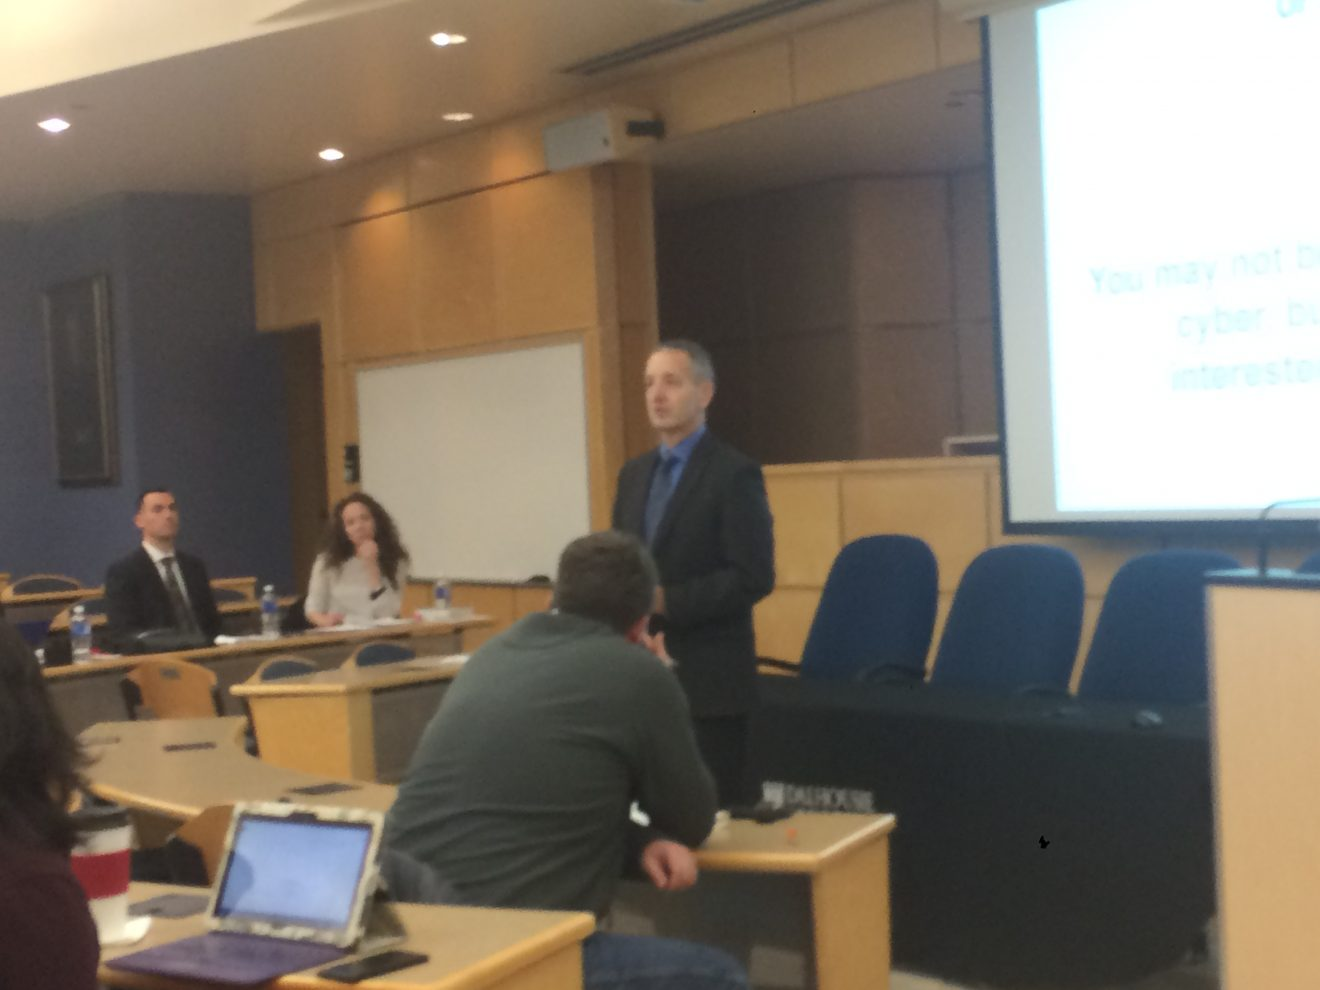 Gary Brown (standing) speaks during the annual International Humanitarian Law conference at Dalhousie on January 27.